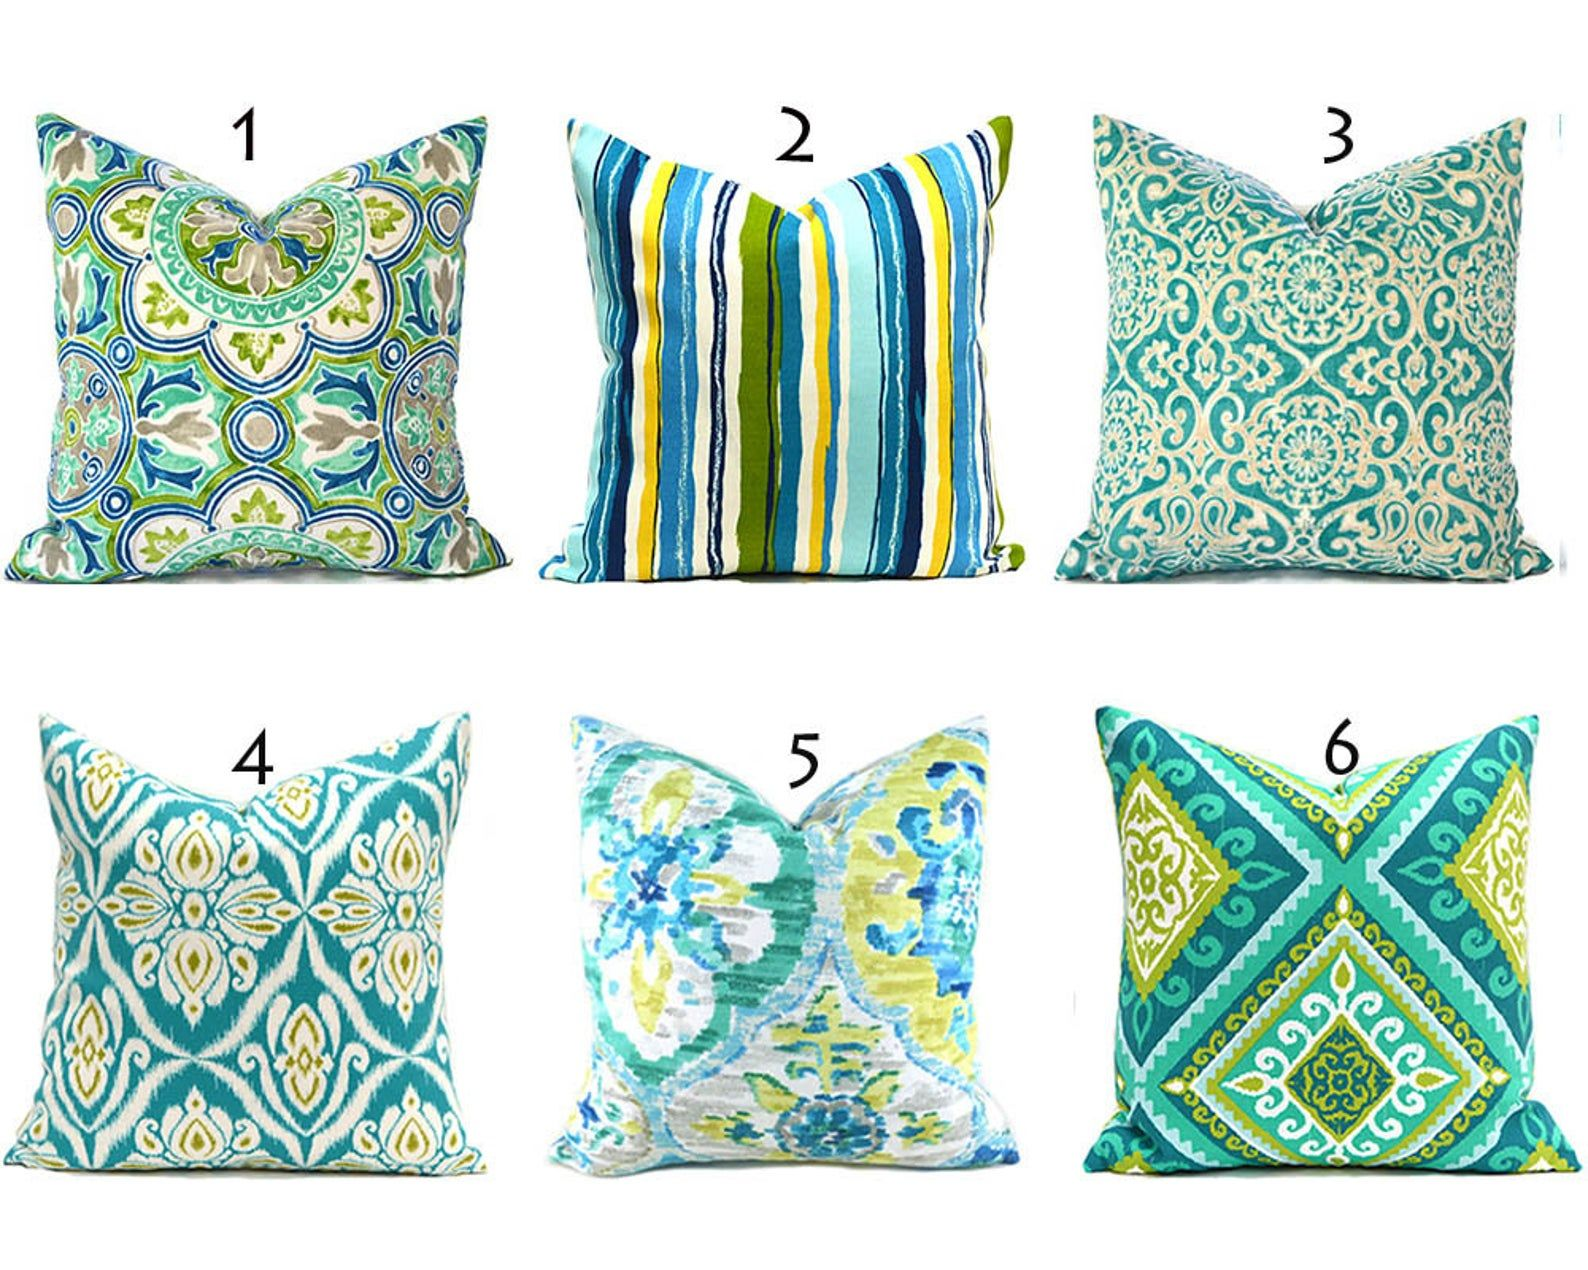 Outdoor Pillow Covers Any Size Decorative Home Decor Turquoise Blue Green Designer Throw Pillow Covers You Choose Outdoor Outdoor Pillow Covers Designer Throw Pillows Pillow Covers